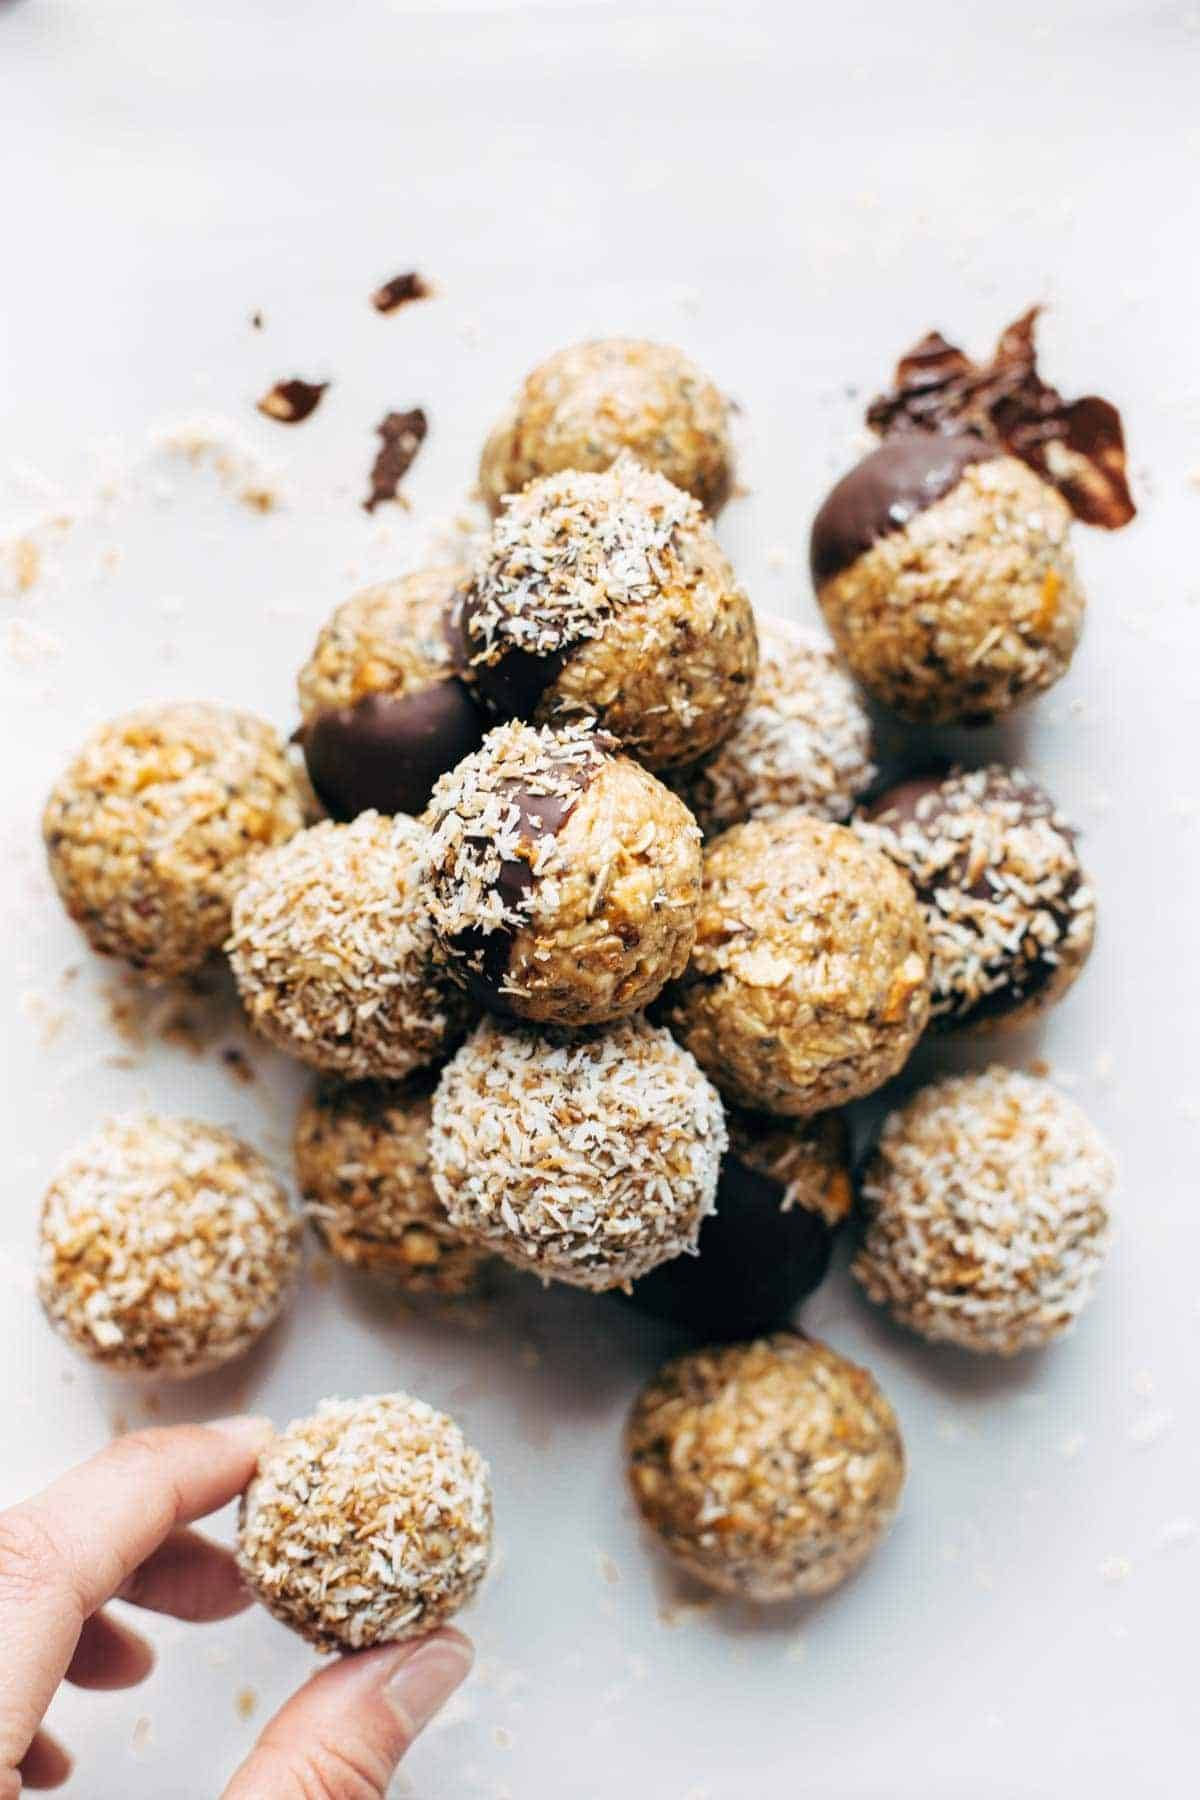 Energy Bites! Easy no-bake recipe with real food like oats, chia seeds, peanut butter, and coconut. Stays soft and yummy for weeks in the fridge! | pinchofyum.com